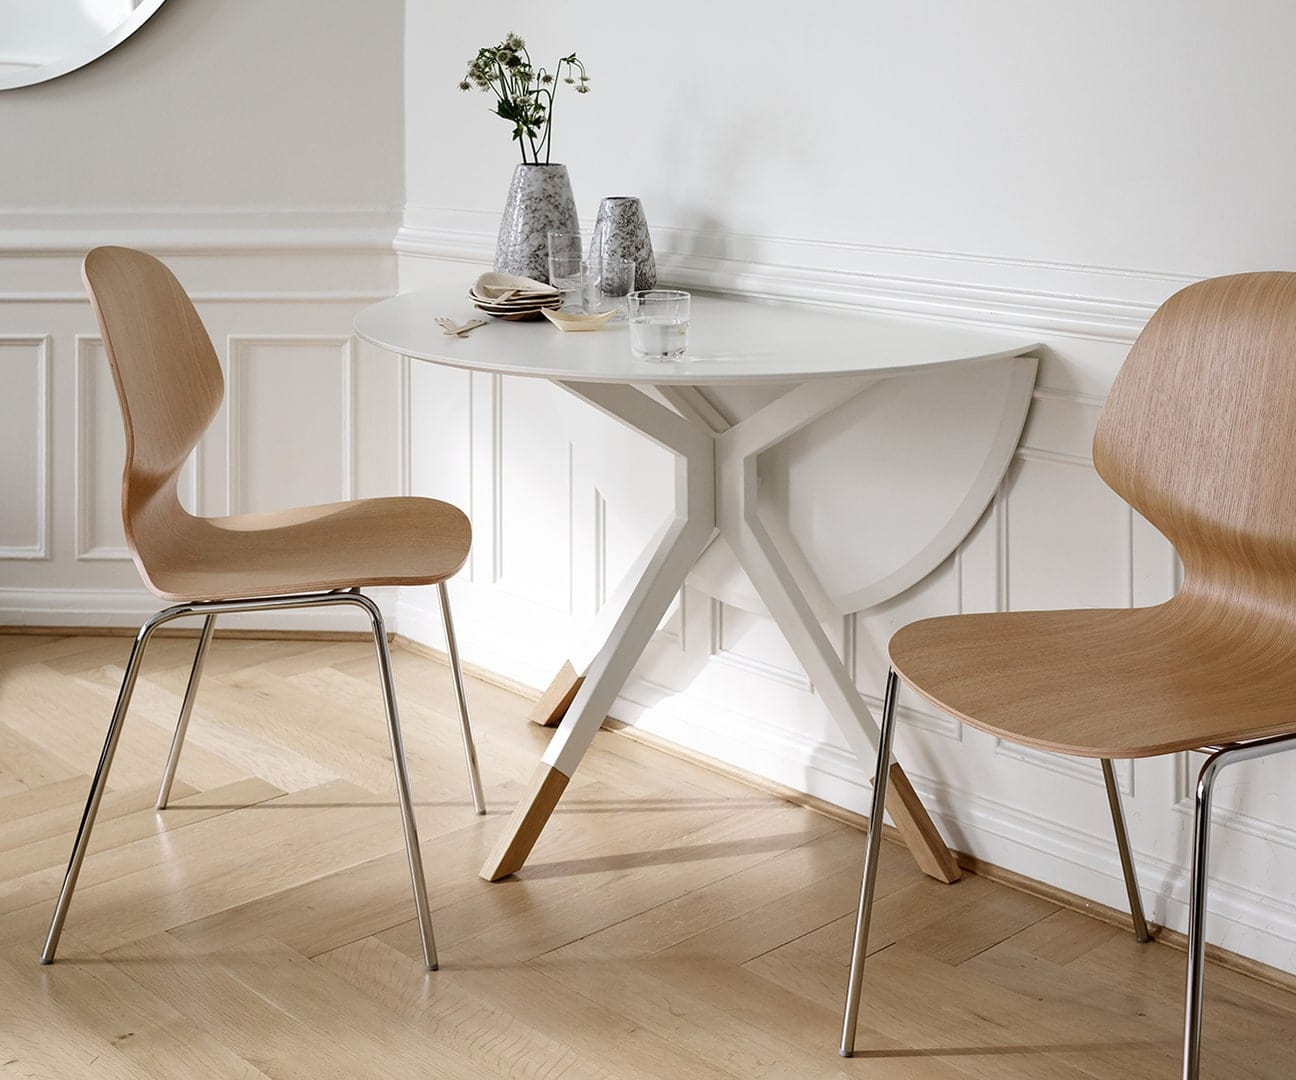 7 Space Saving Tables For Small Dining Rooms Tlc Interiors